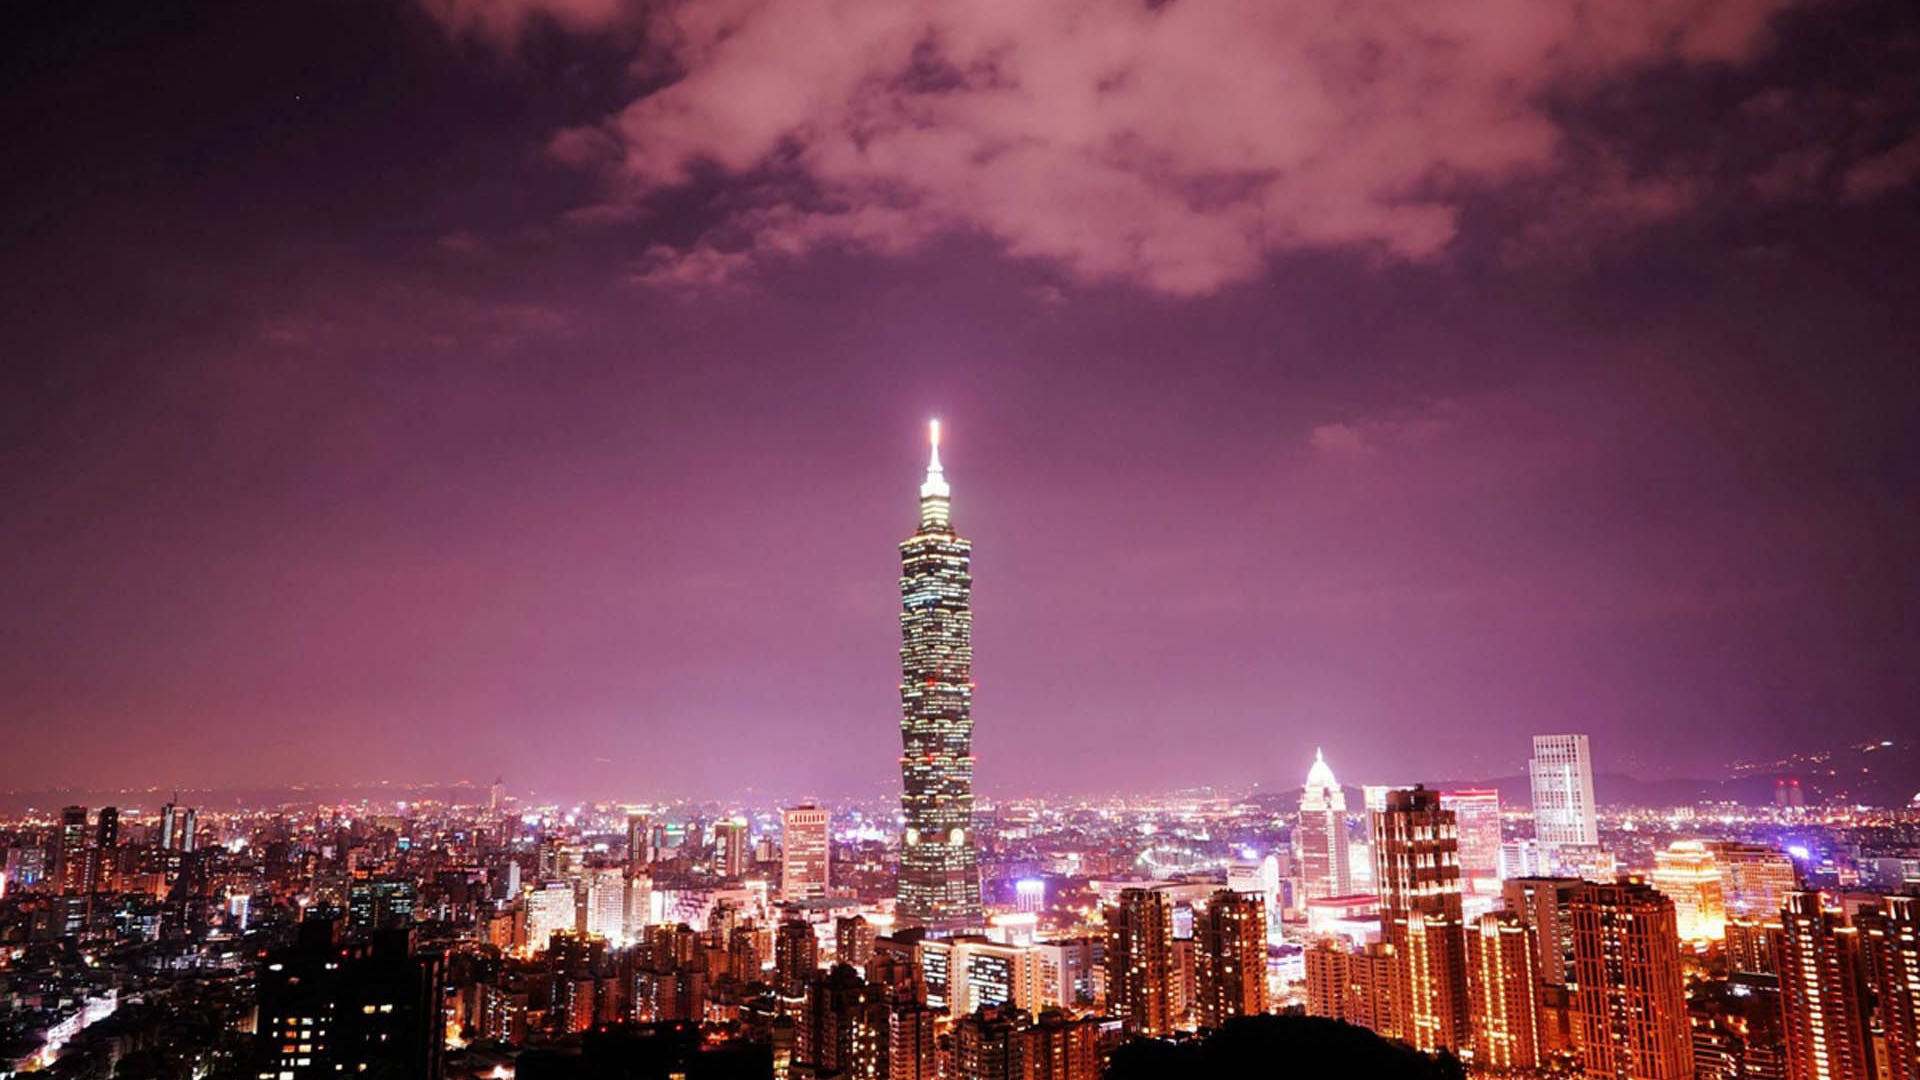 taipei 101 tower city light skyline wallpapers - 1920x1080 - 383448